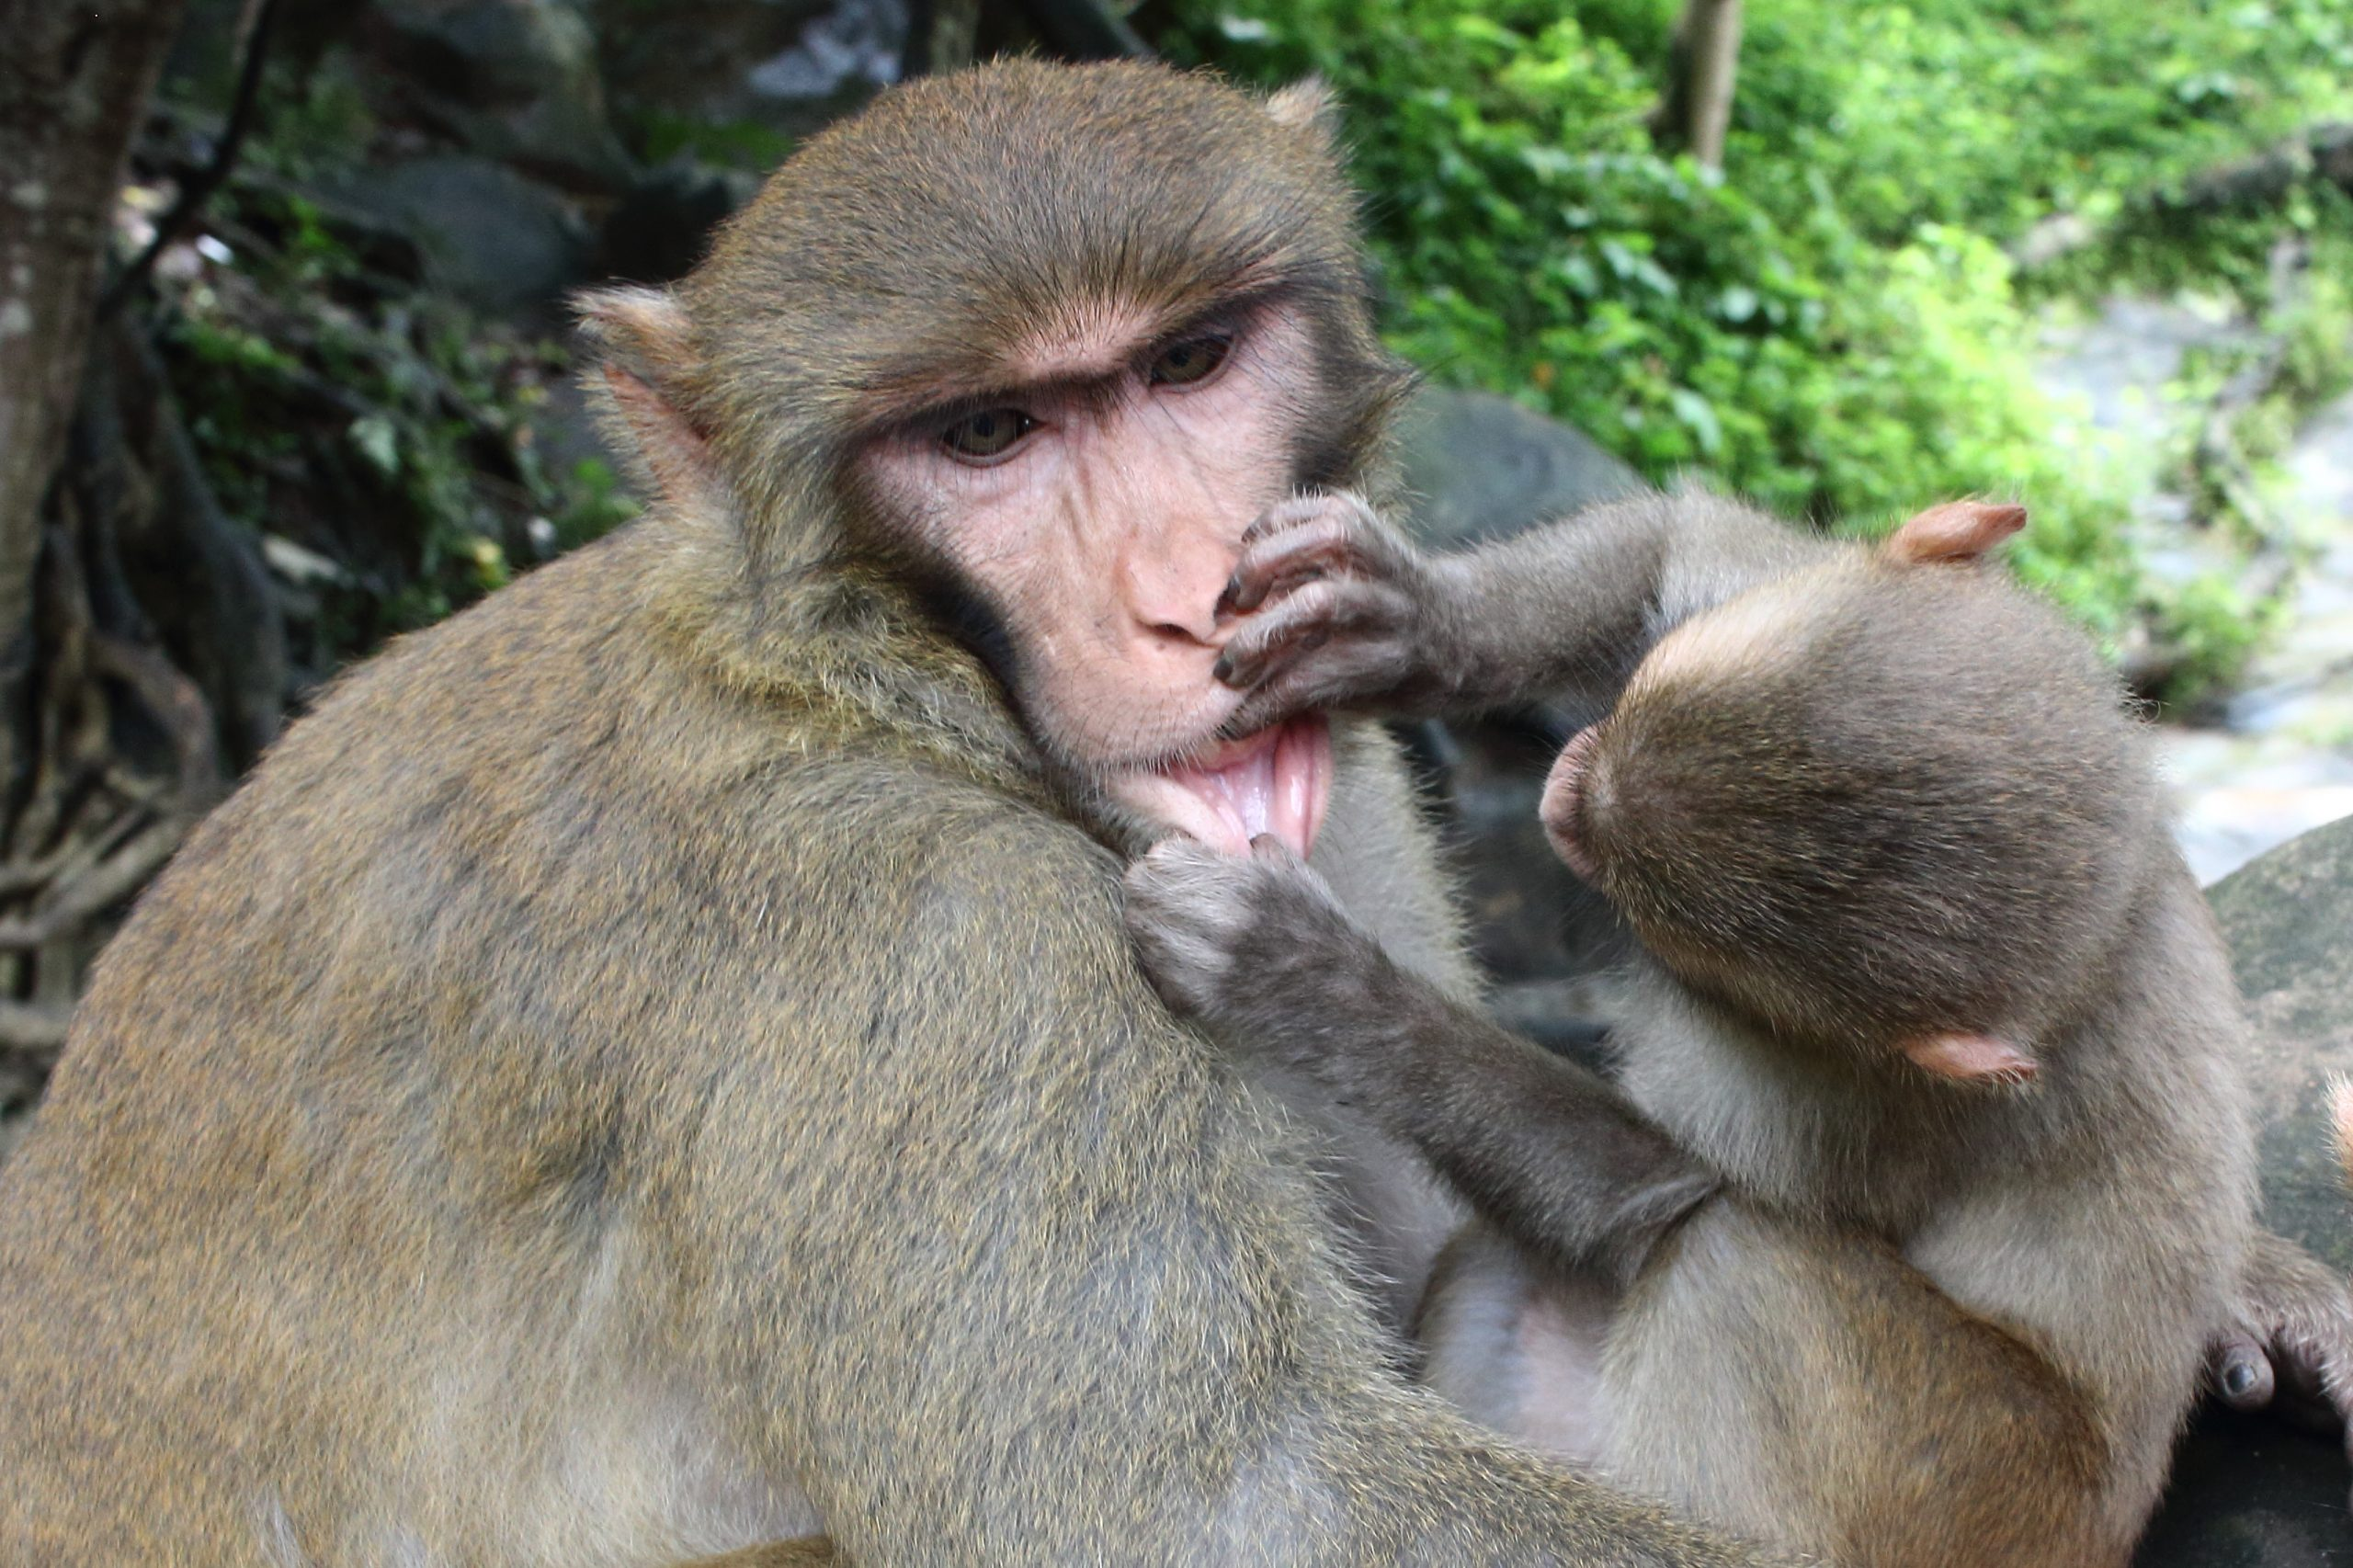 A baby monkey with mother